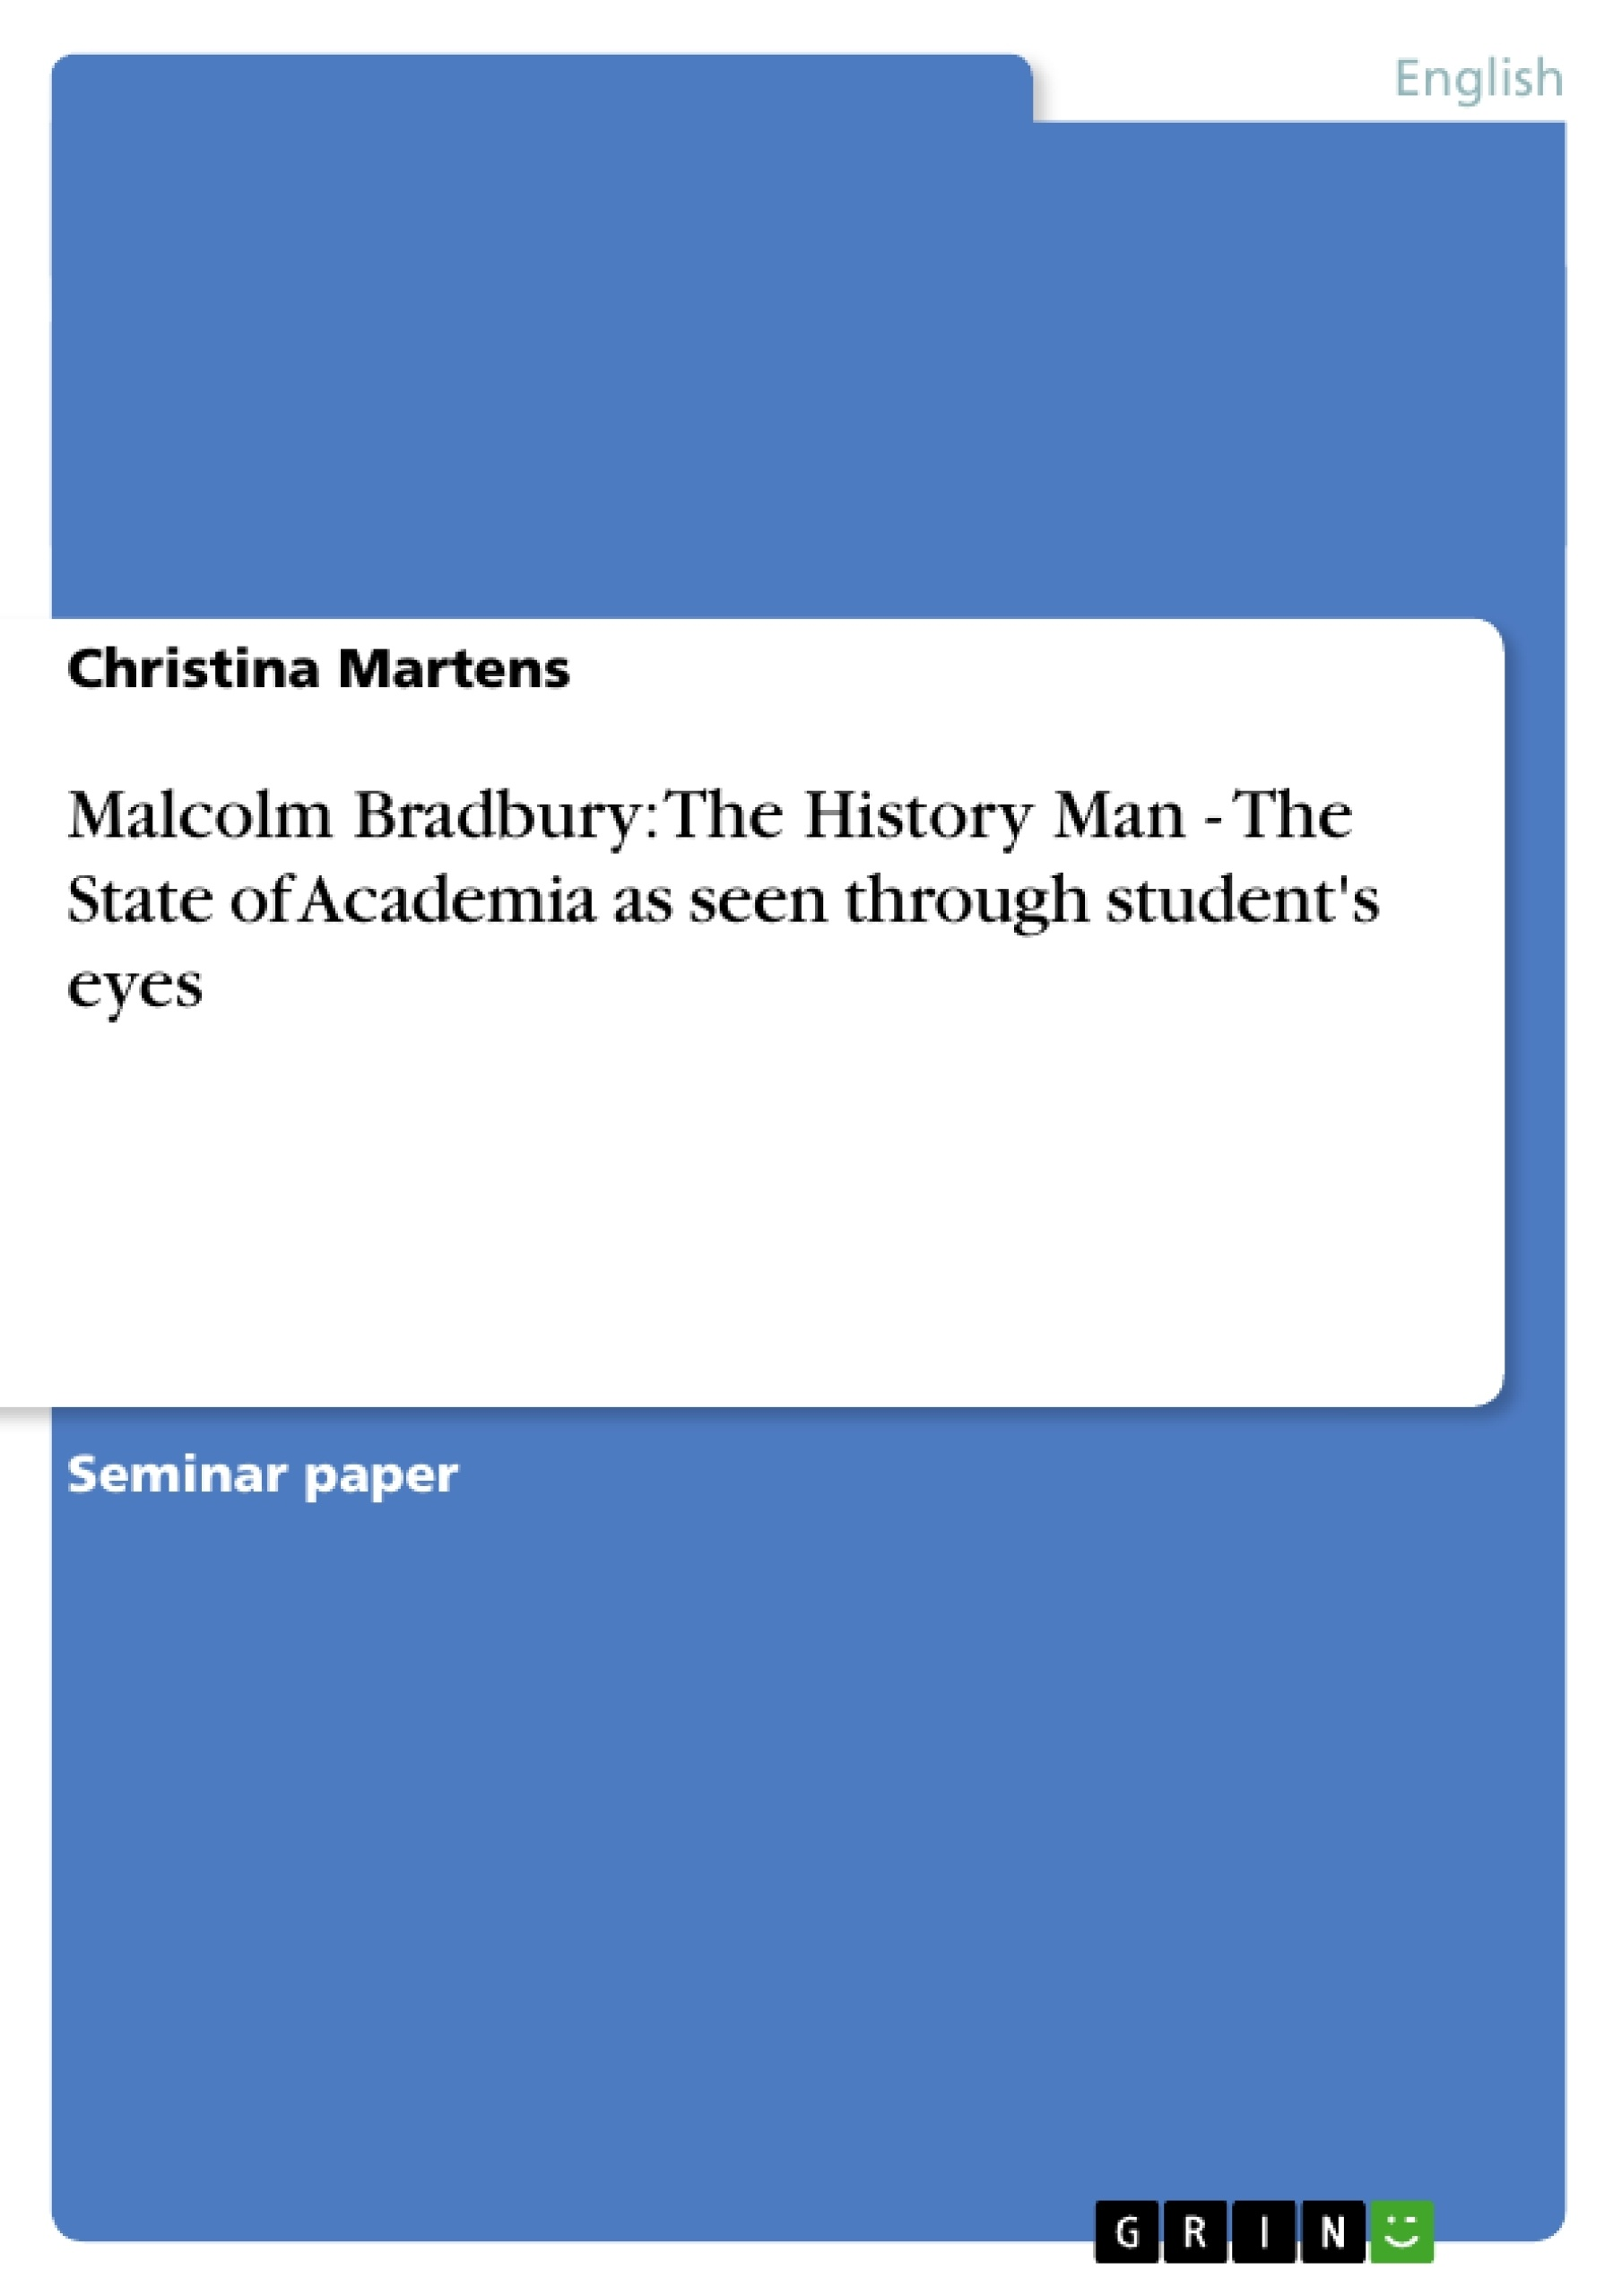 Title: Malcolm Bradbury: The History Man - The State of Academia as seen through student's eyes